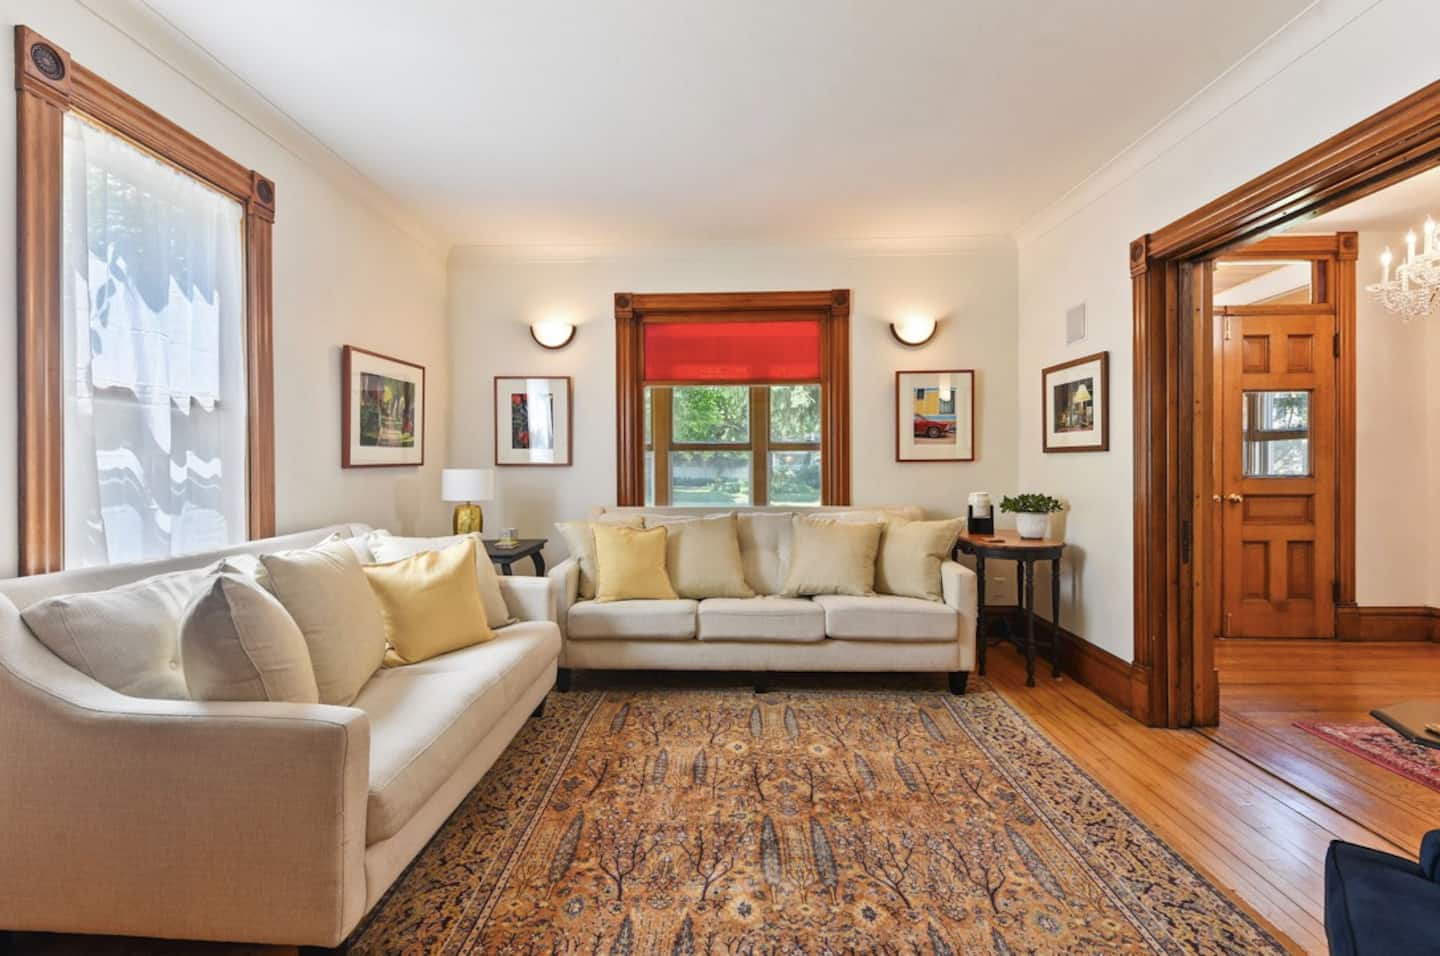 Airbnb in Minneapolis for Large GroupsAirbnb in Minneapolis for Large Groups